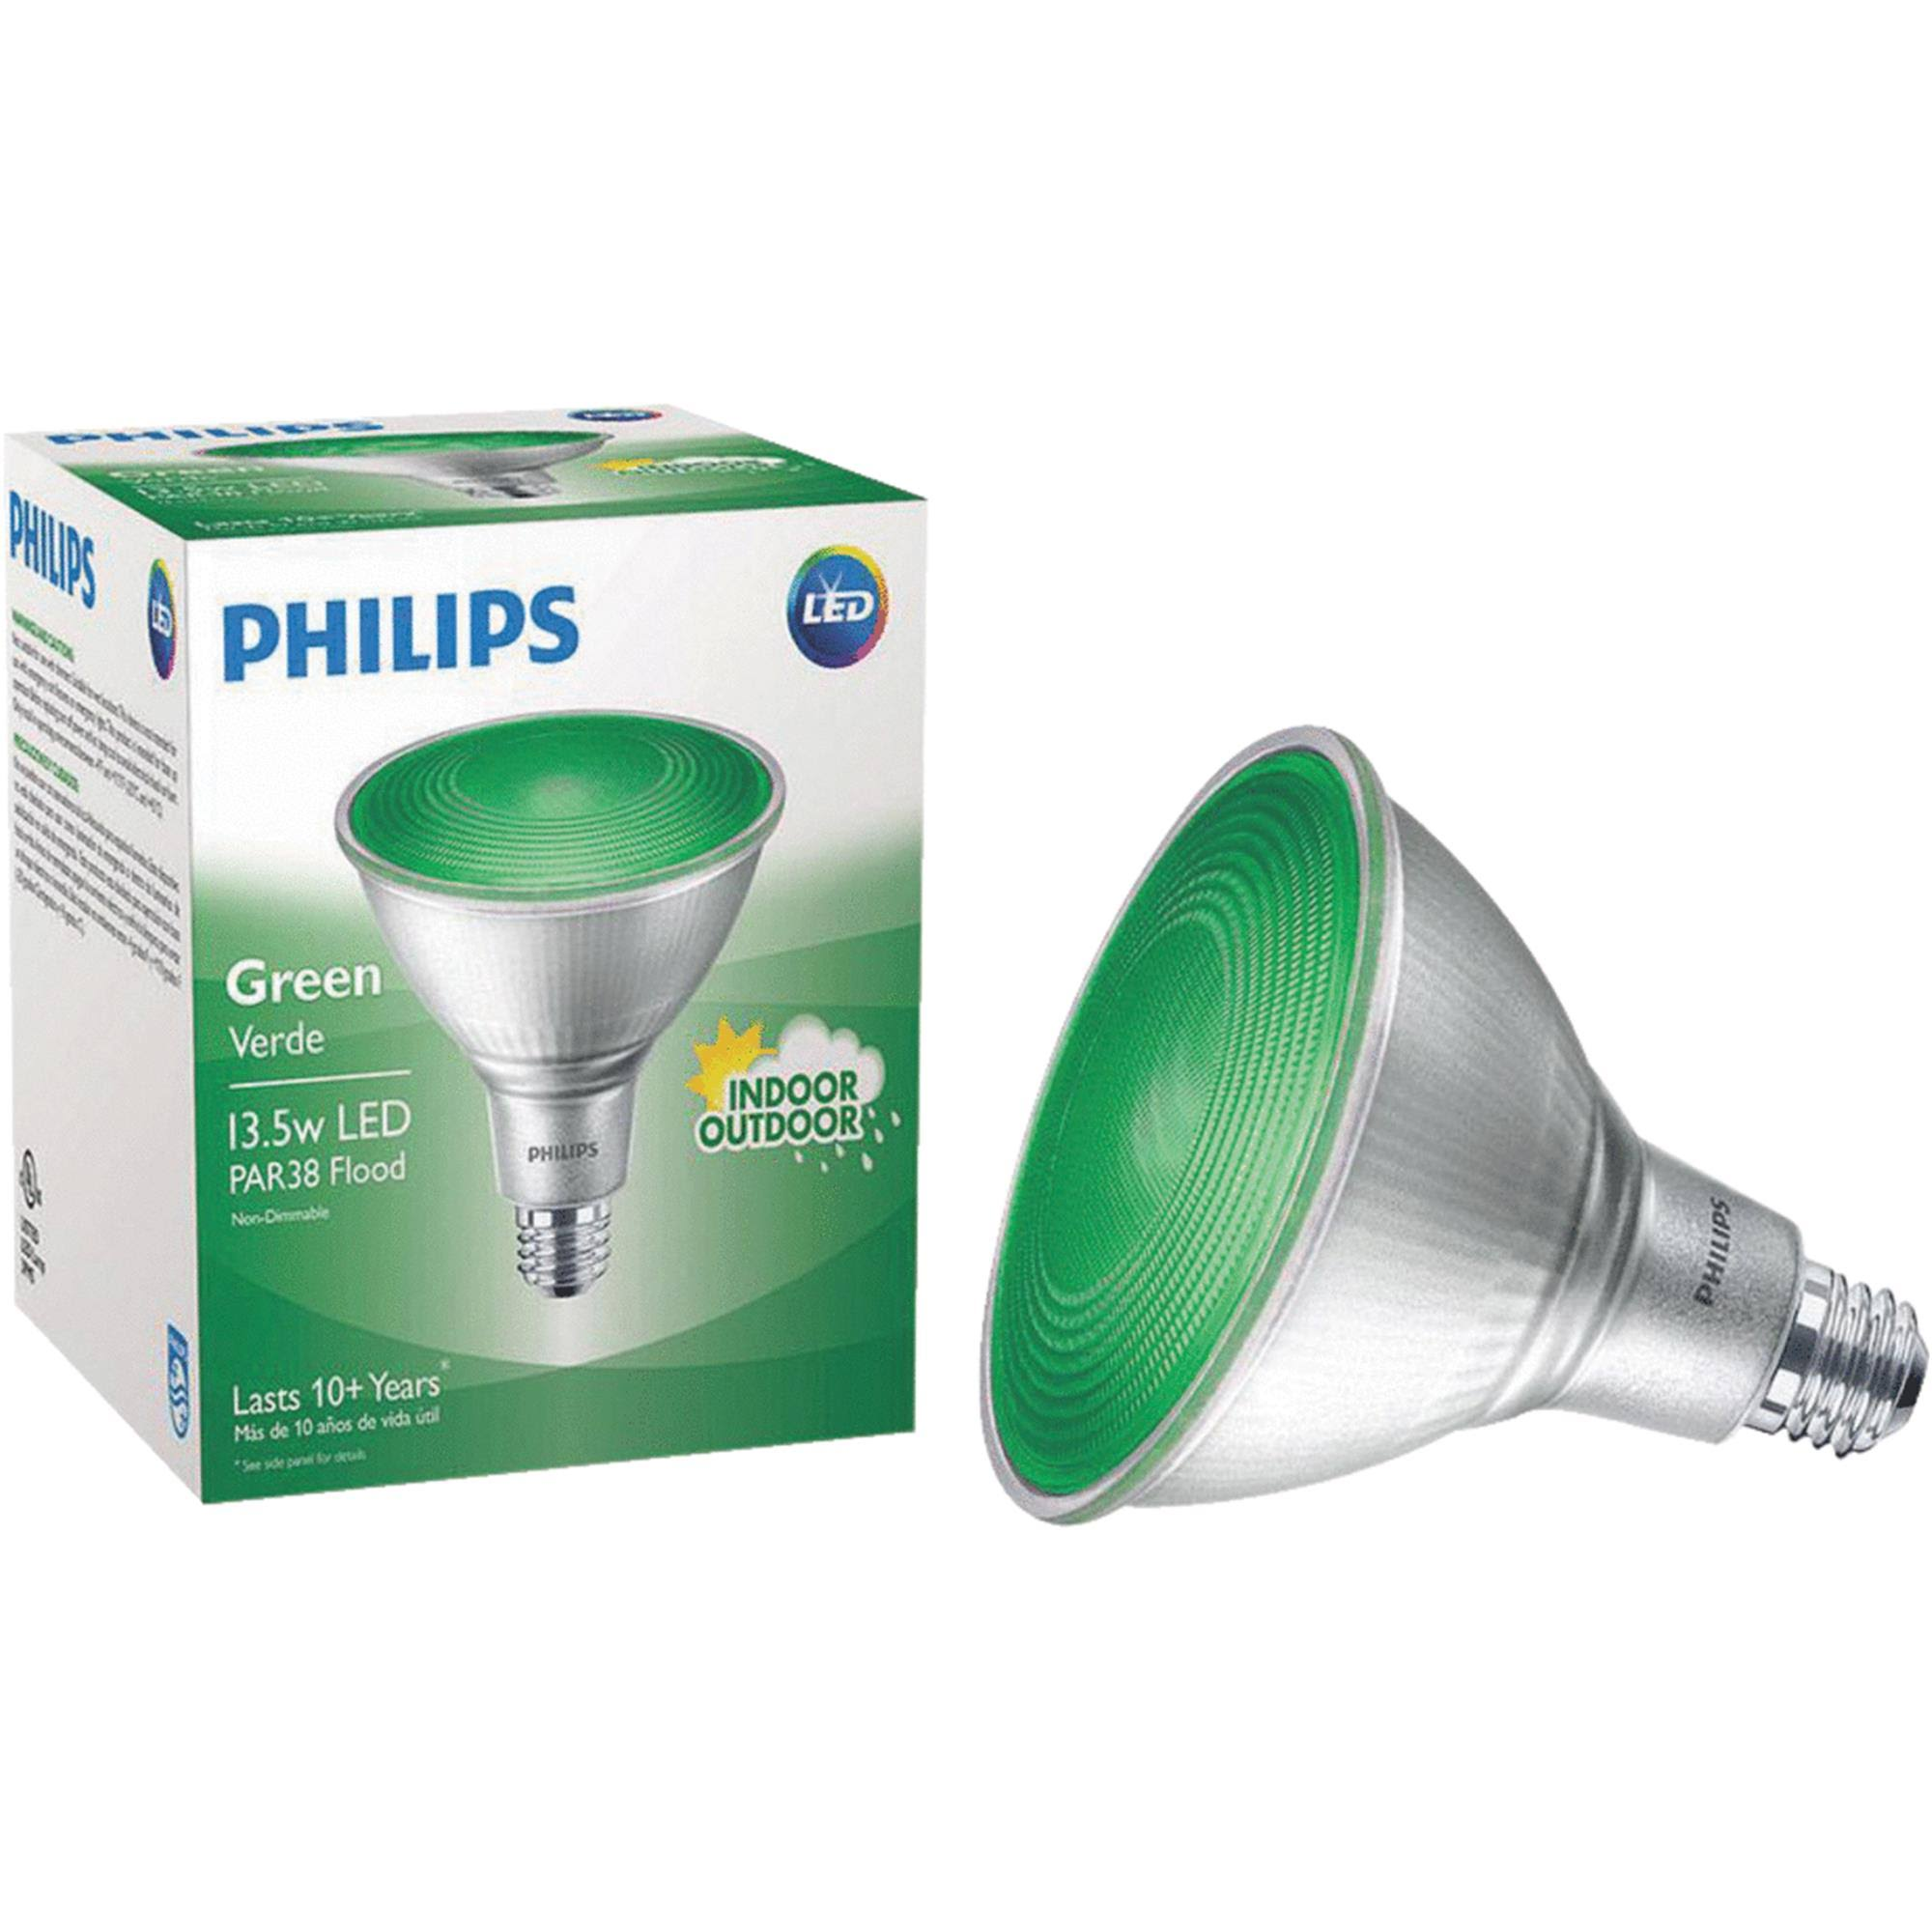 Philips Par38 Colored LED Floodlight Light Bulb - Green, 90W